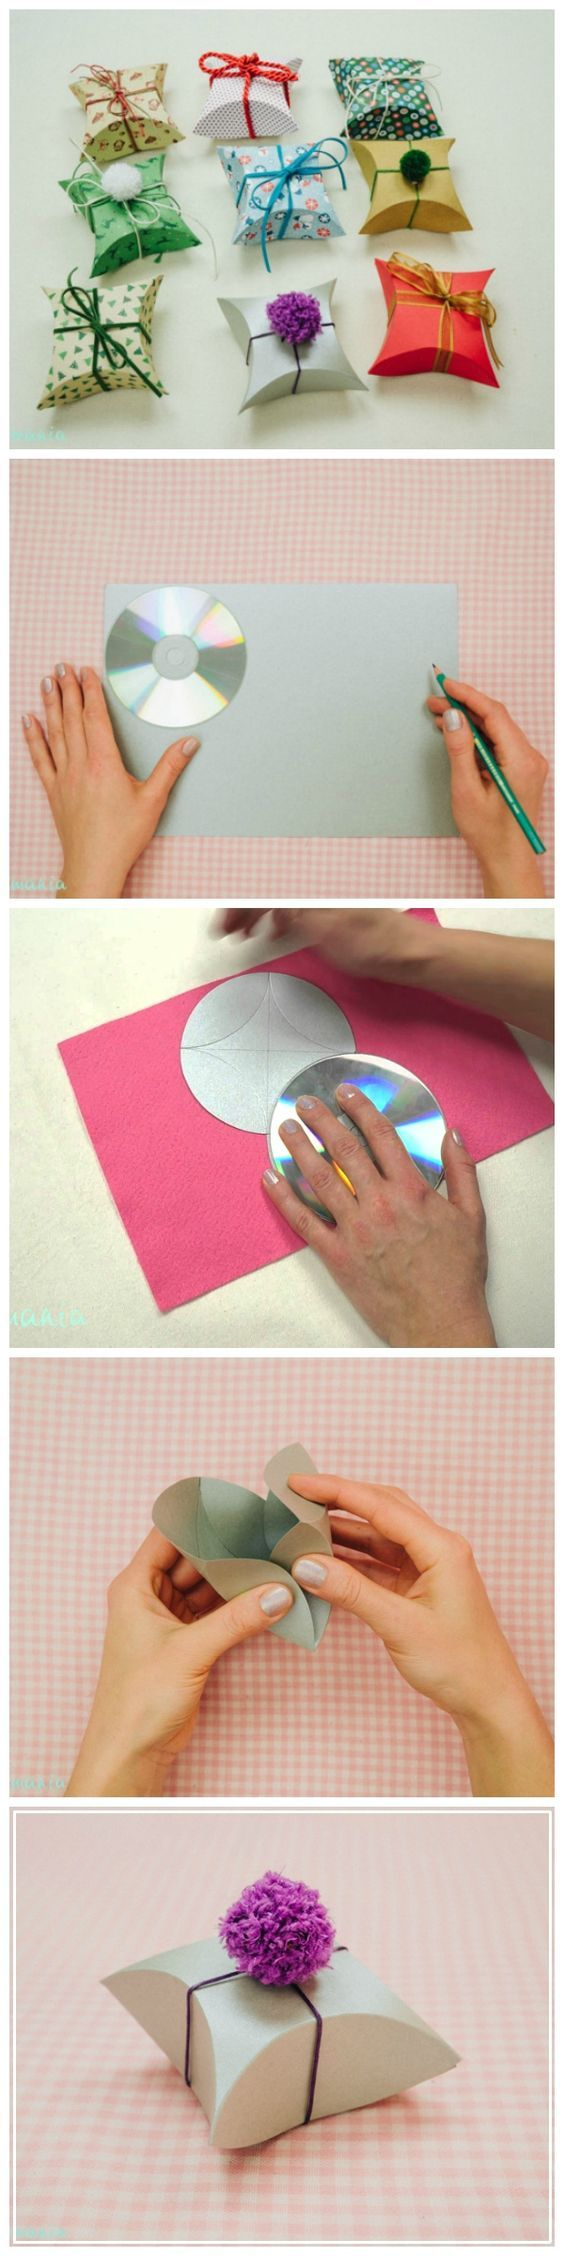 DIY: Beautiful Square Pillow Gift Box Tutorial: